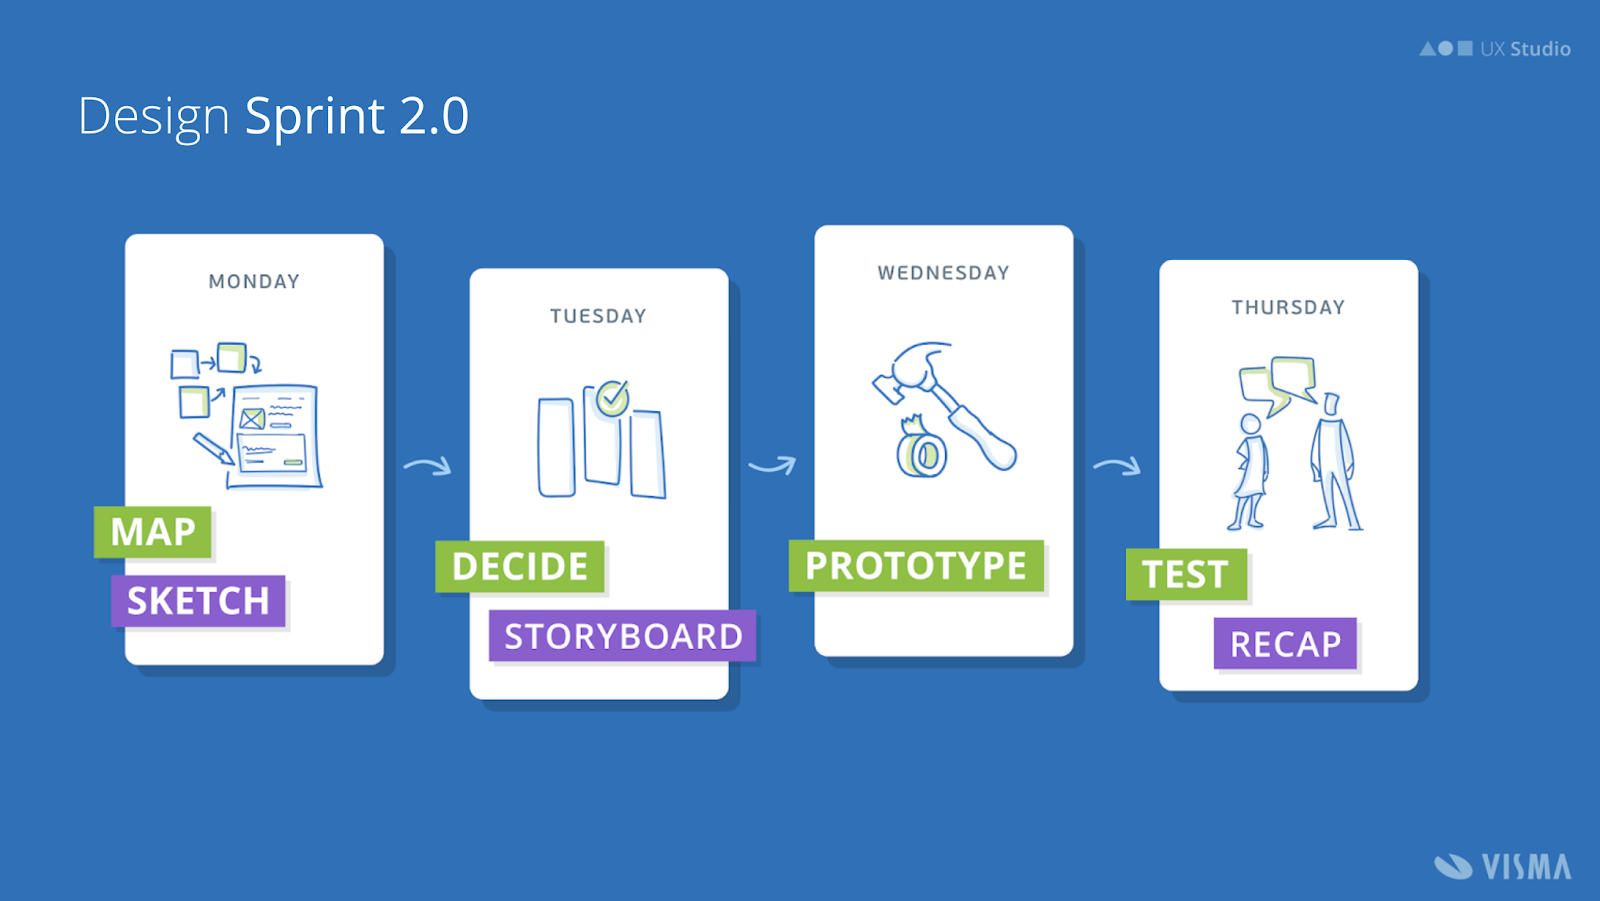 Illustration of a design sprint process